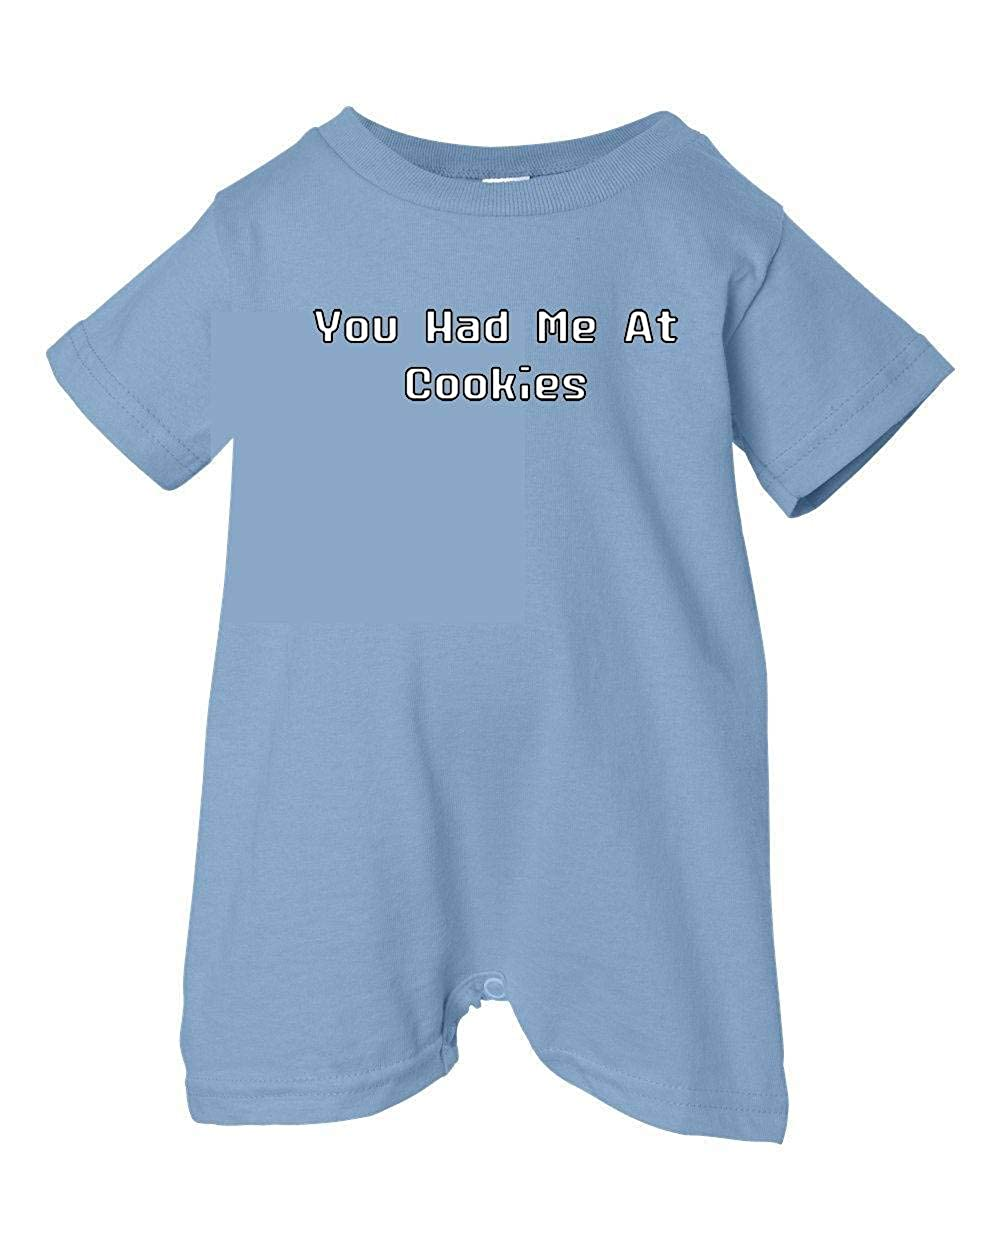 Tasty Threads Unisex Baby You Had Me At Cookies T-Shirt Romper Lt. Blue, 18 Months